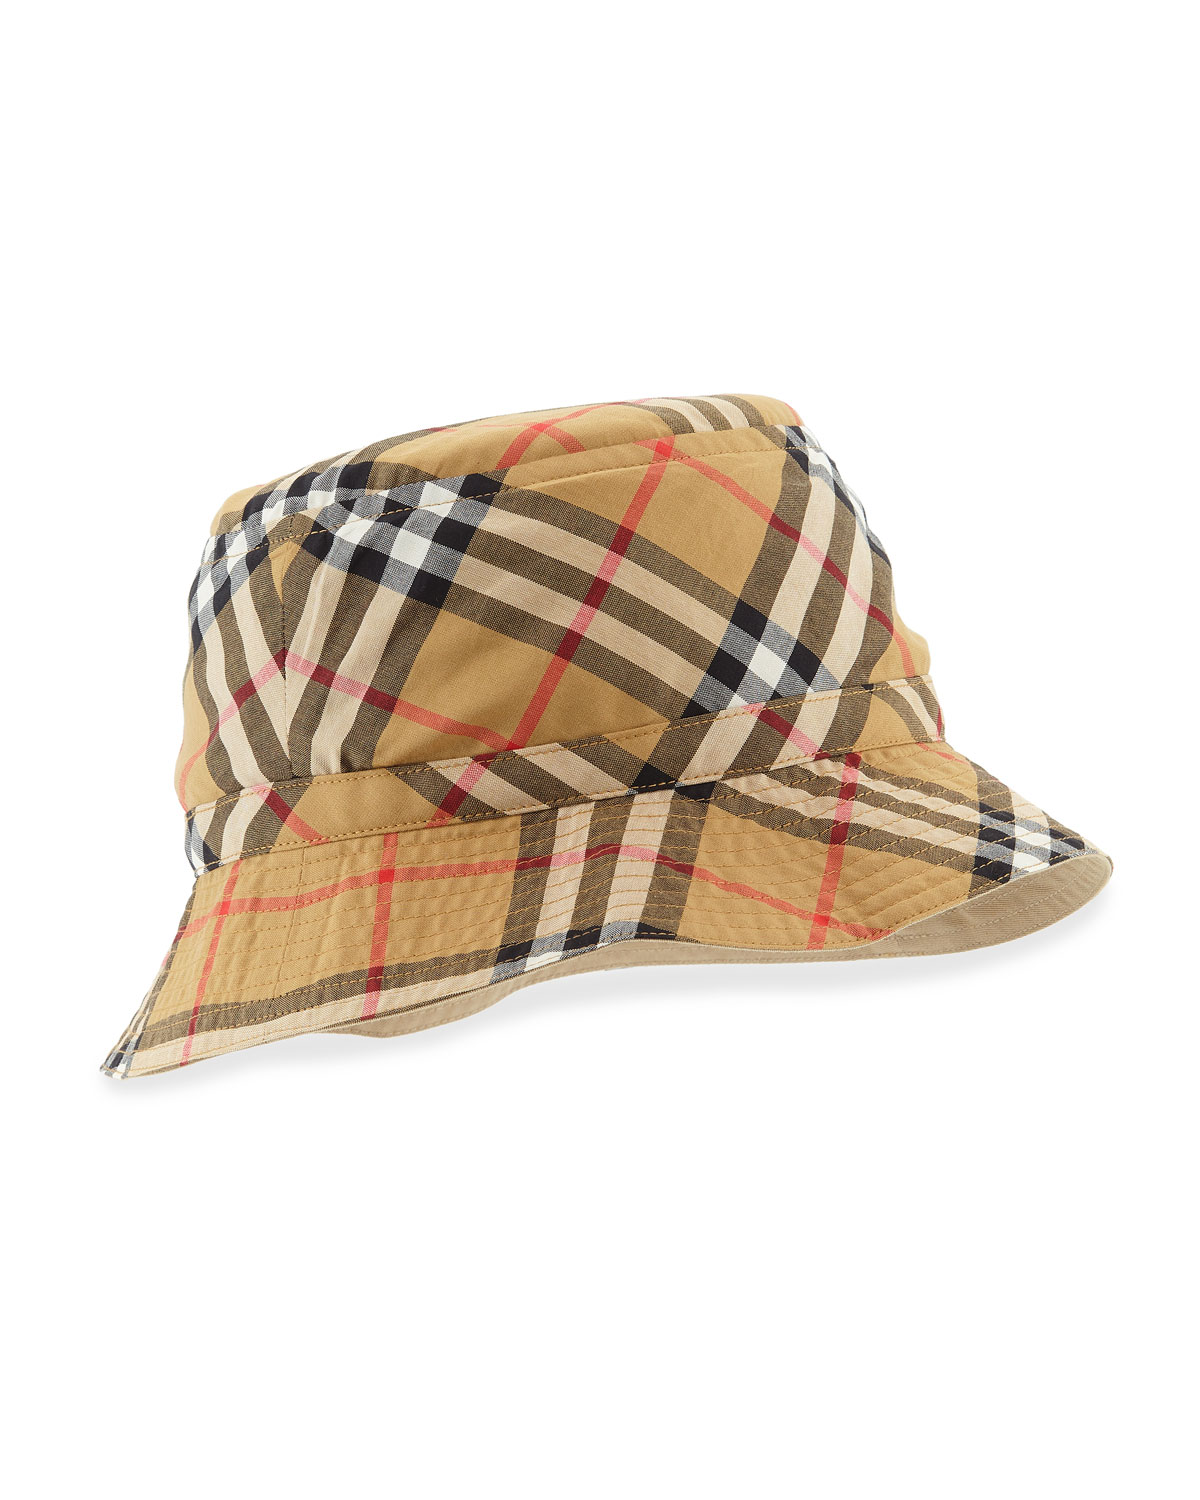 Burberry Vintage Check Bucket Hat 7bb6f7ae41e